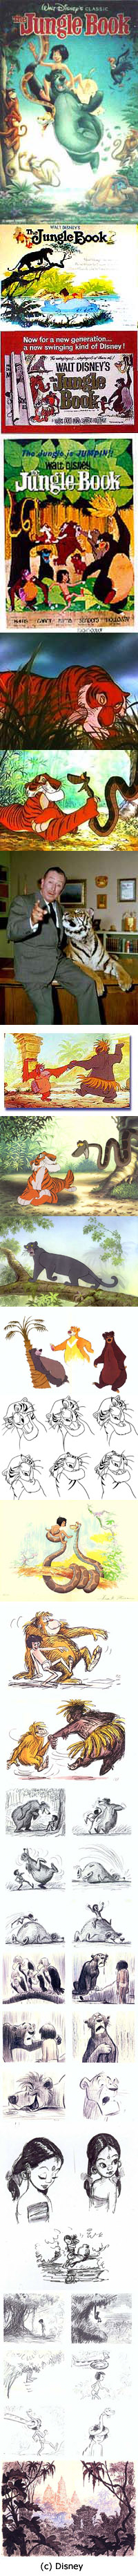 Mogli - O Menino Lobo (The Jungle Book - 1967)